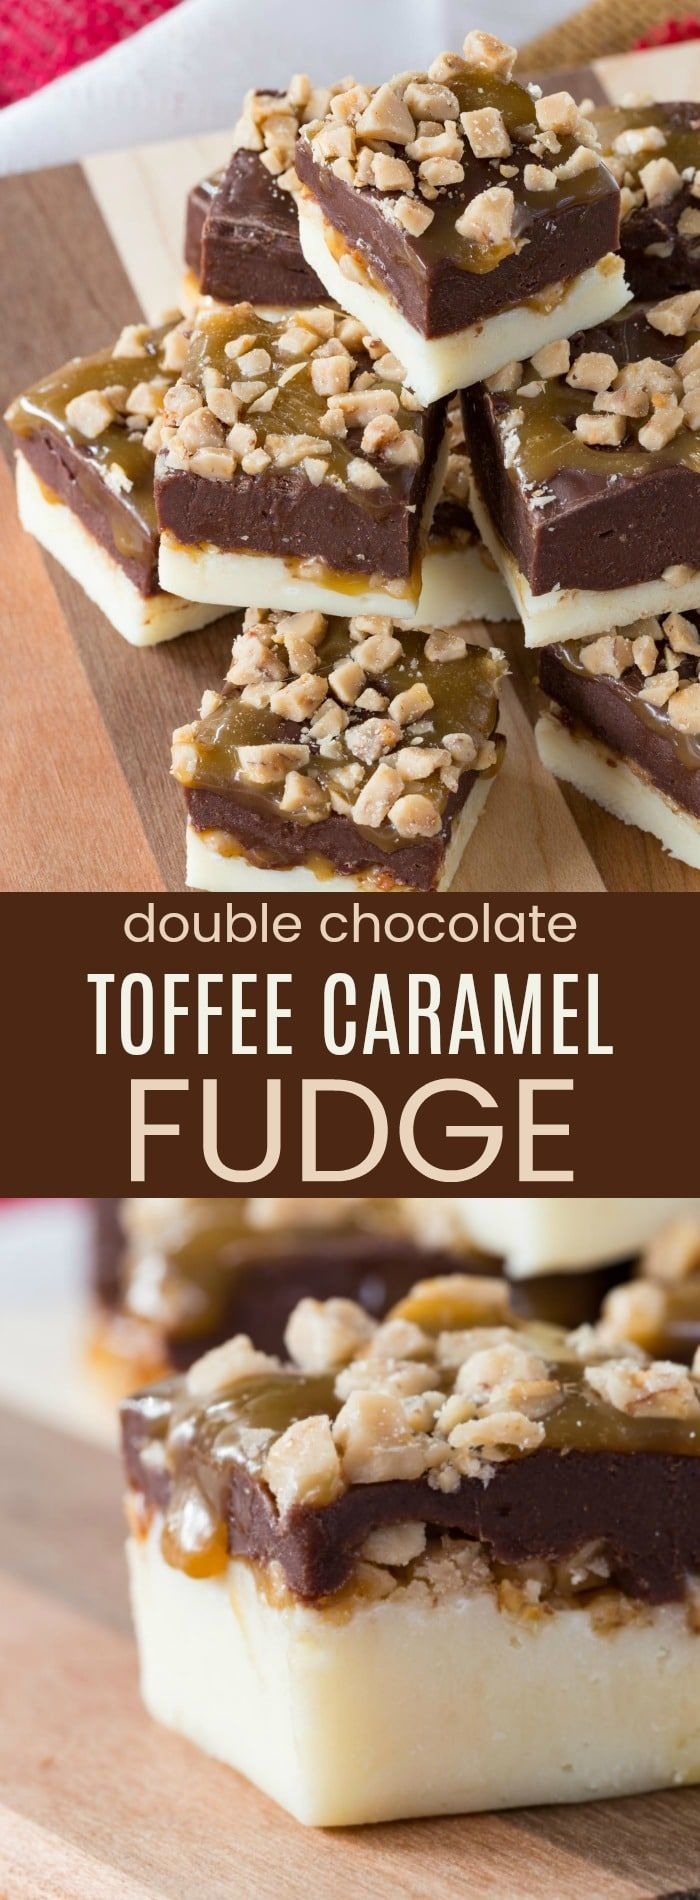 Double Chocolate Toffee Caramel Fudge - an easy microwave fudge recipe with layers of white and dark chocolate, gooey caramel, and bits of toffee. This simple candy is the perfect no-bake dessert for the holidays or any day.